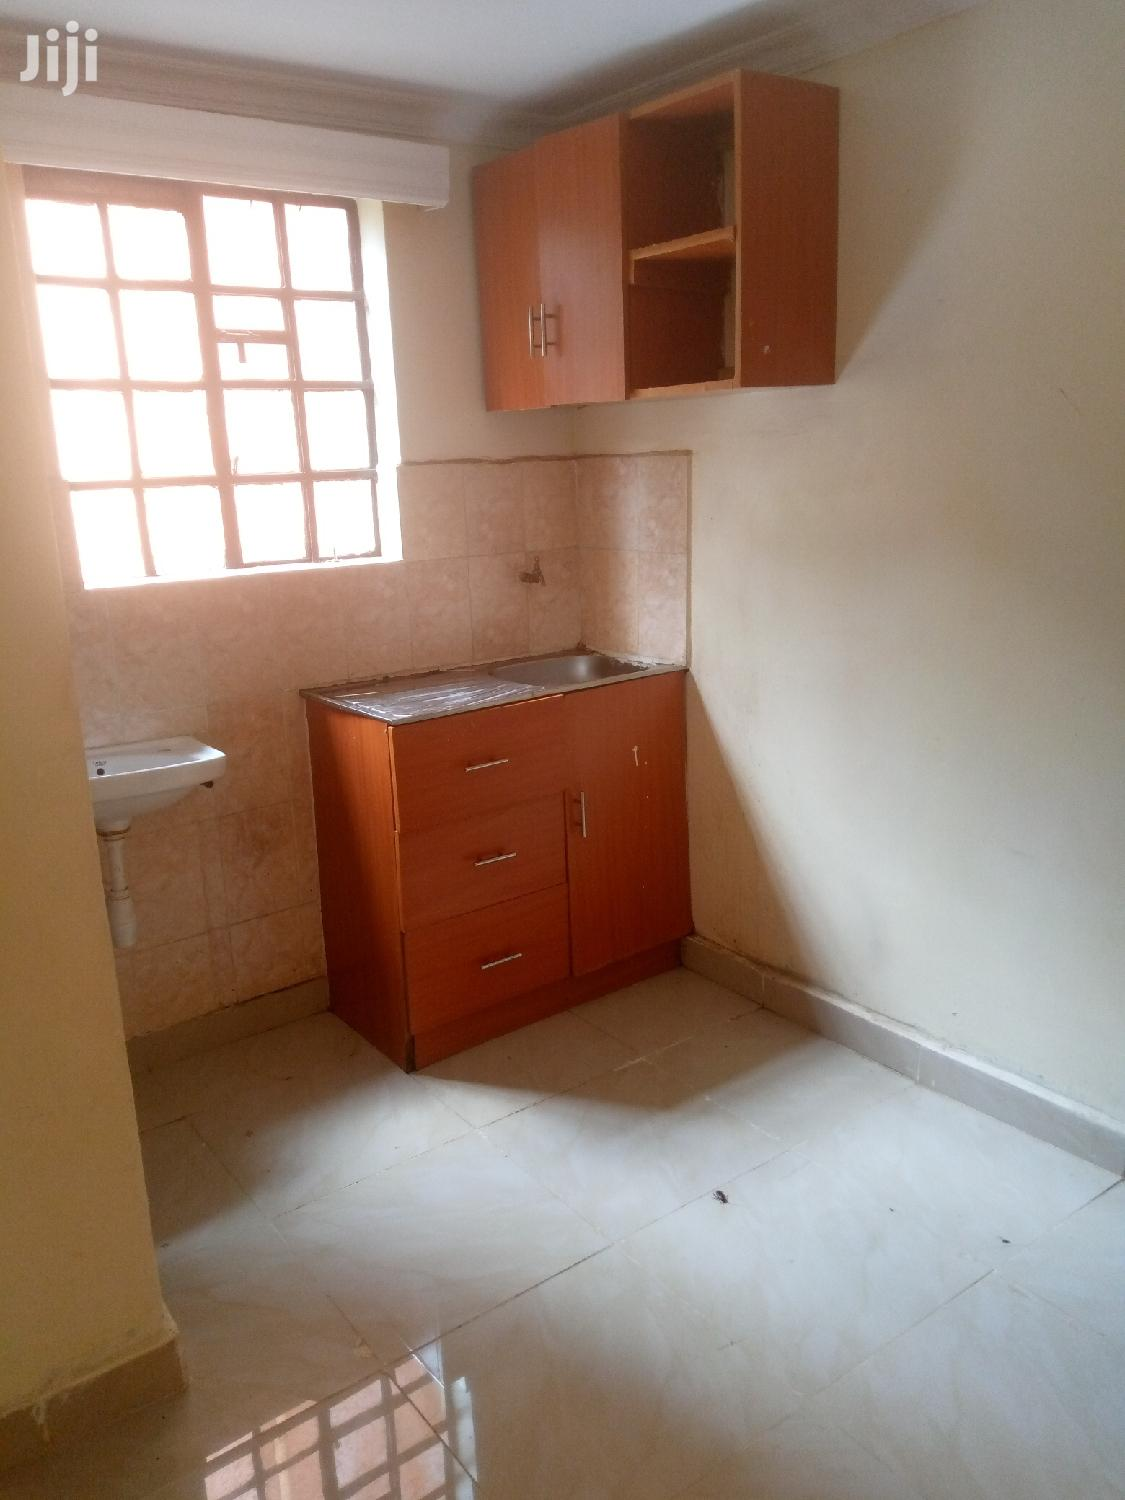 Archive: Lovely Studio Apartment (Bedsitter) to Let in Westlands